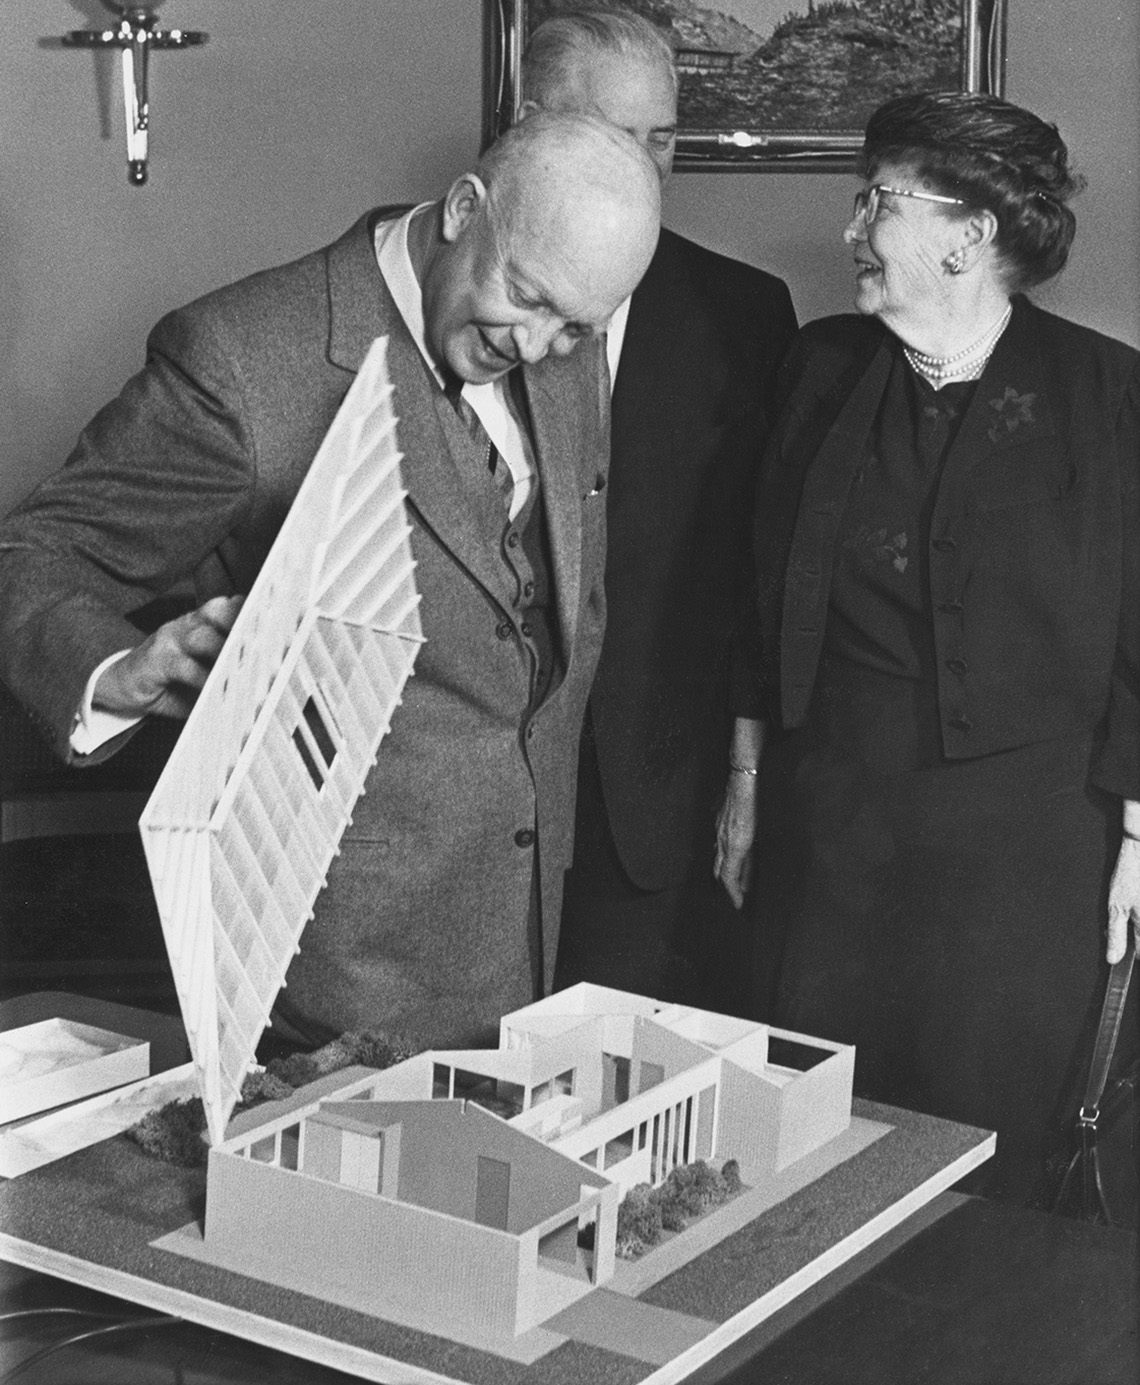 """President Eisenhower examines a scale model of the """"House of Freedom,"""" with Dr. Andrus in the background."""